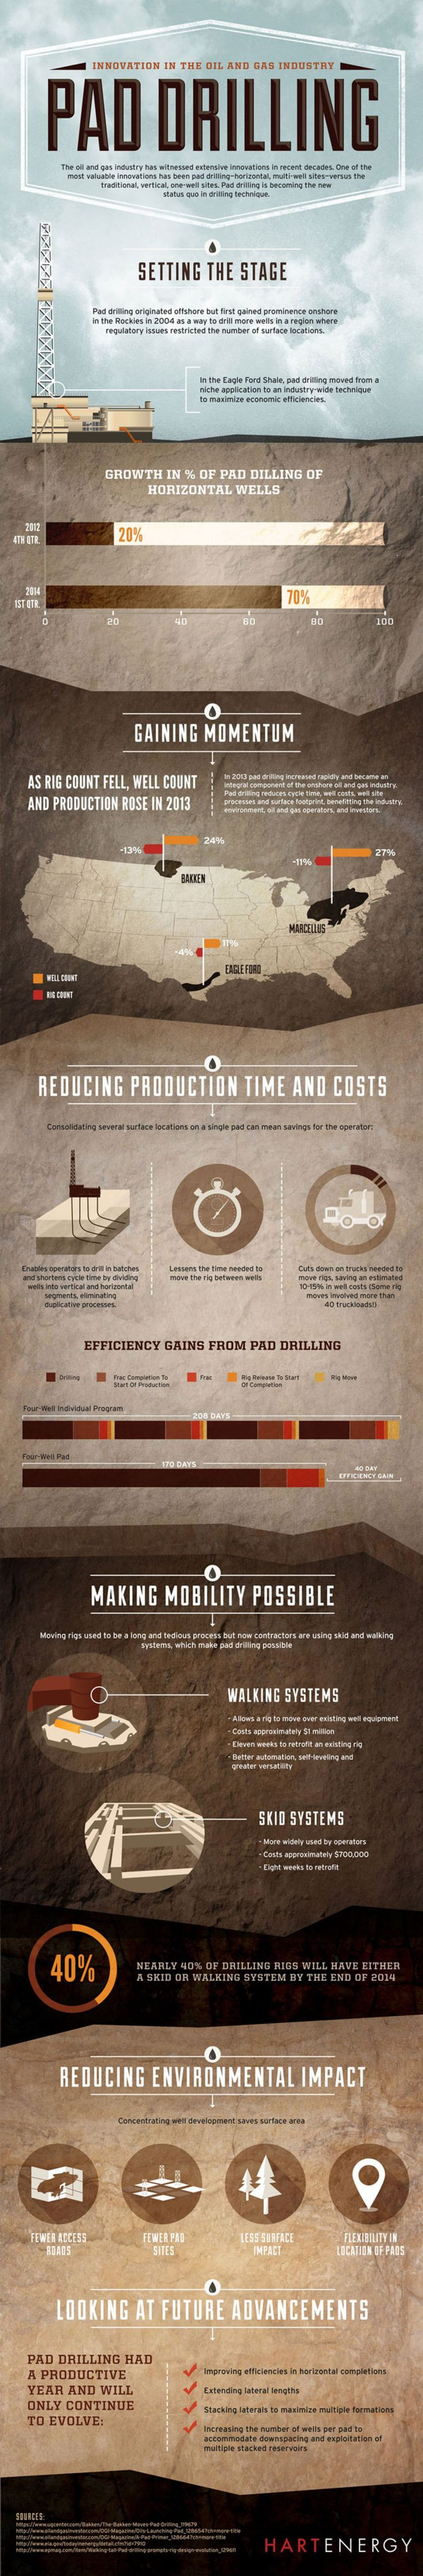 Pad Drilling: Innovation in the Oil and Gas Industry  Infographic